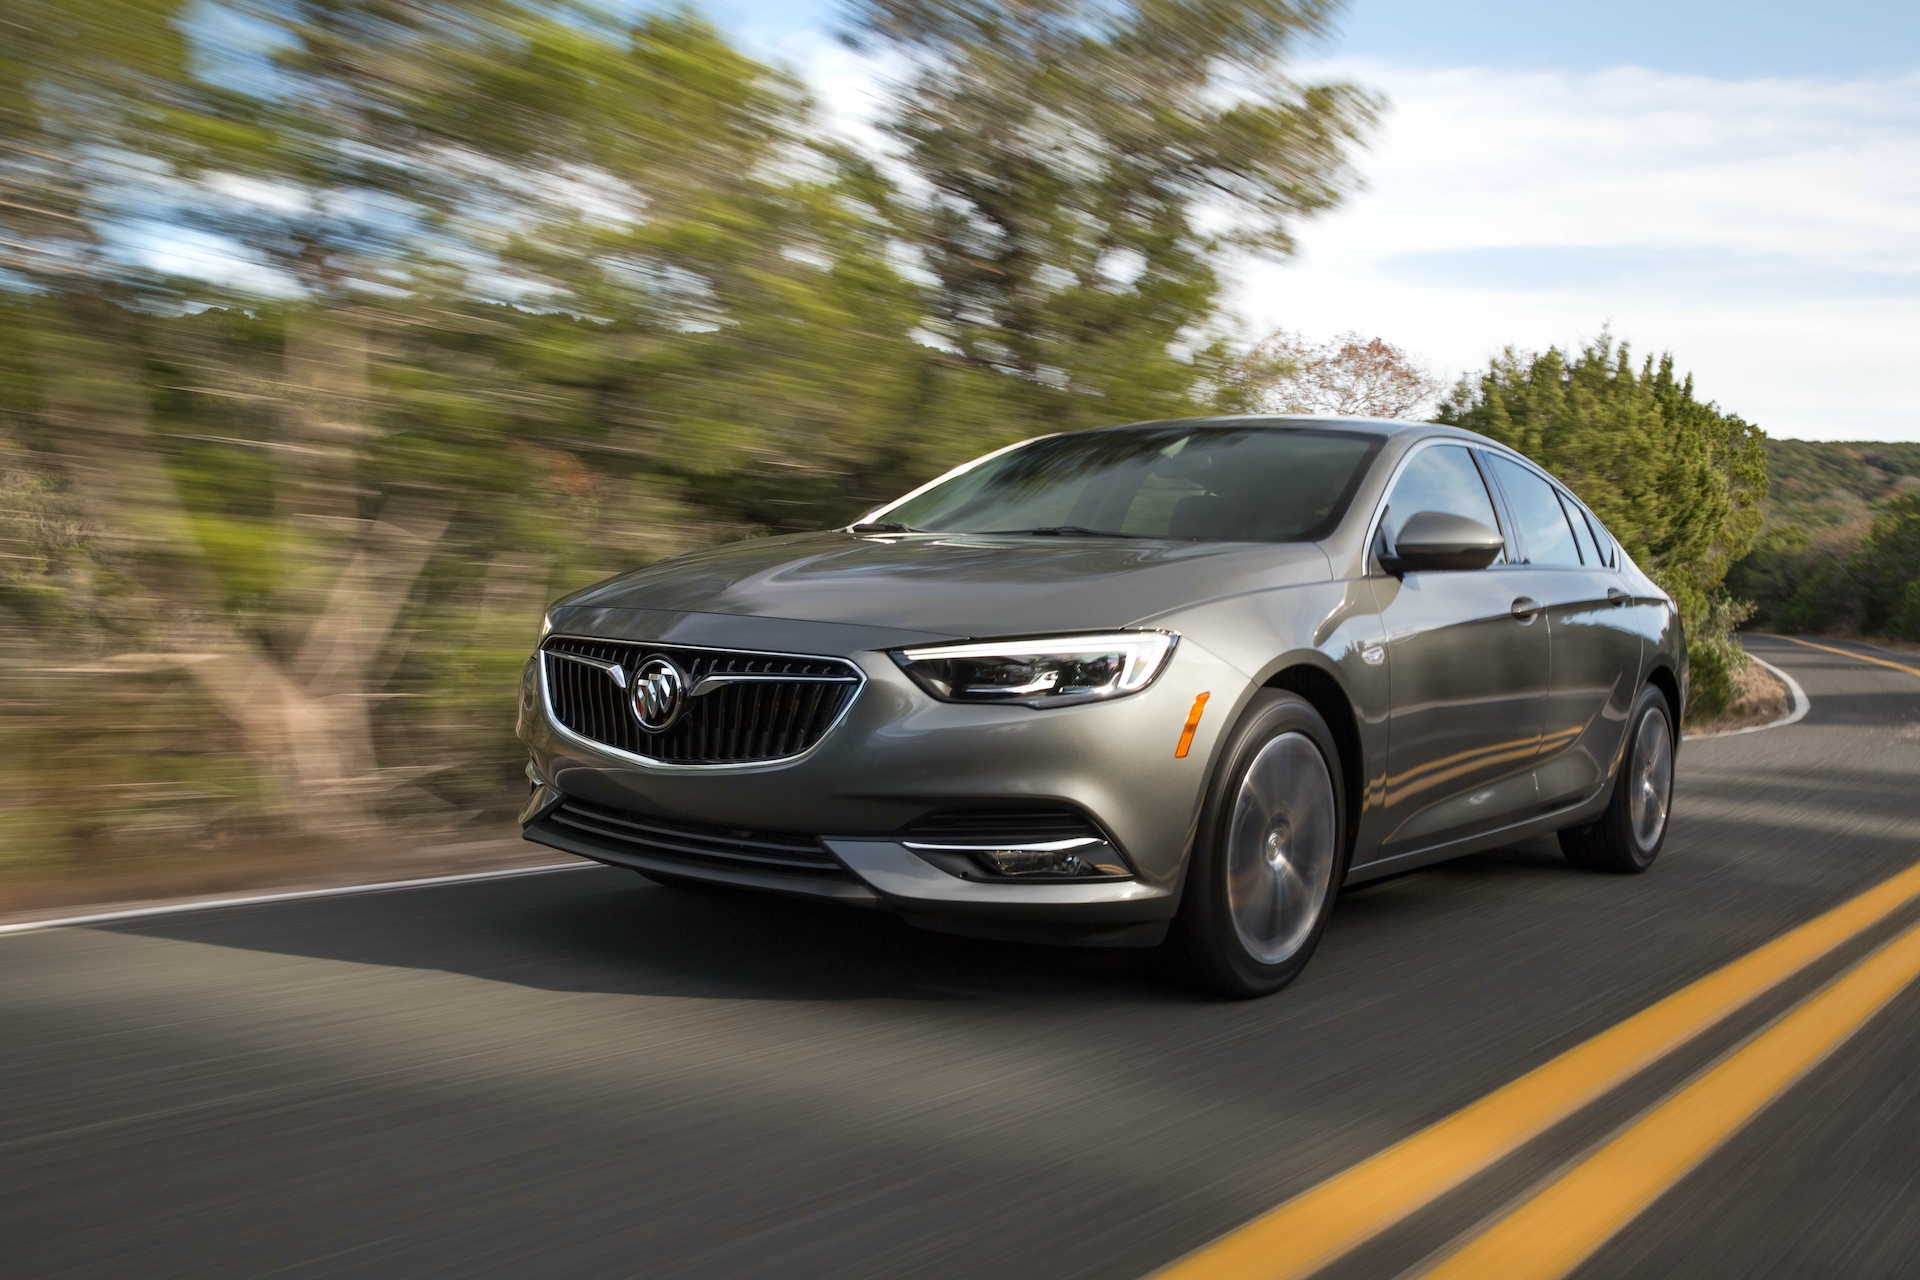 Buick Regal Won't Return For 2021 Is There A New 2021 Buick Regal